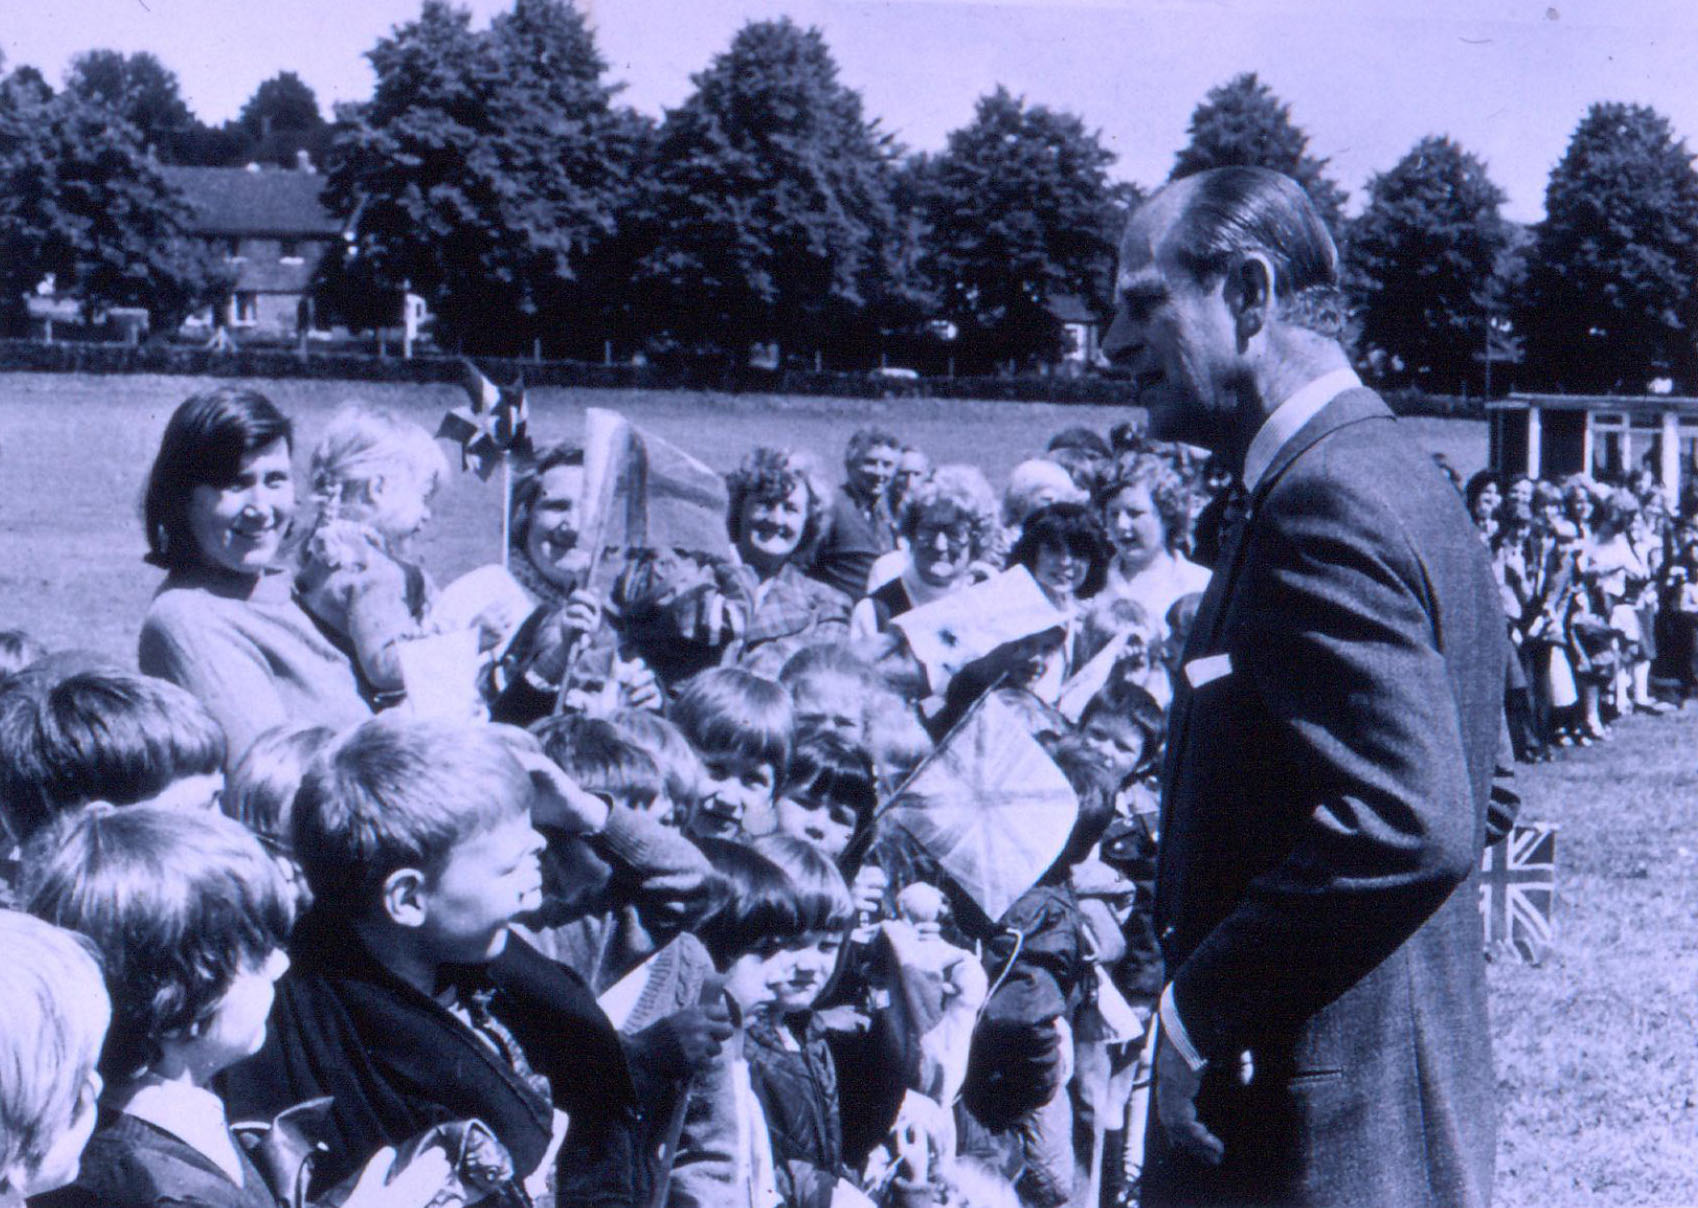 Prince Philip with admirers